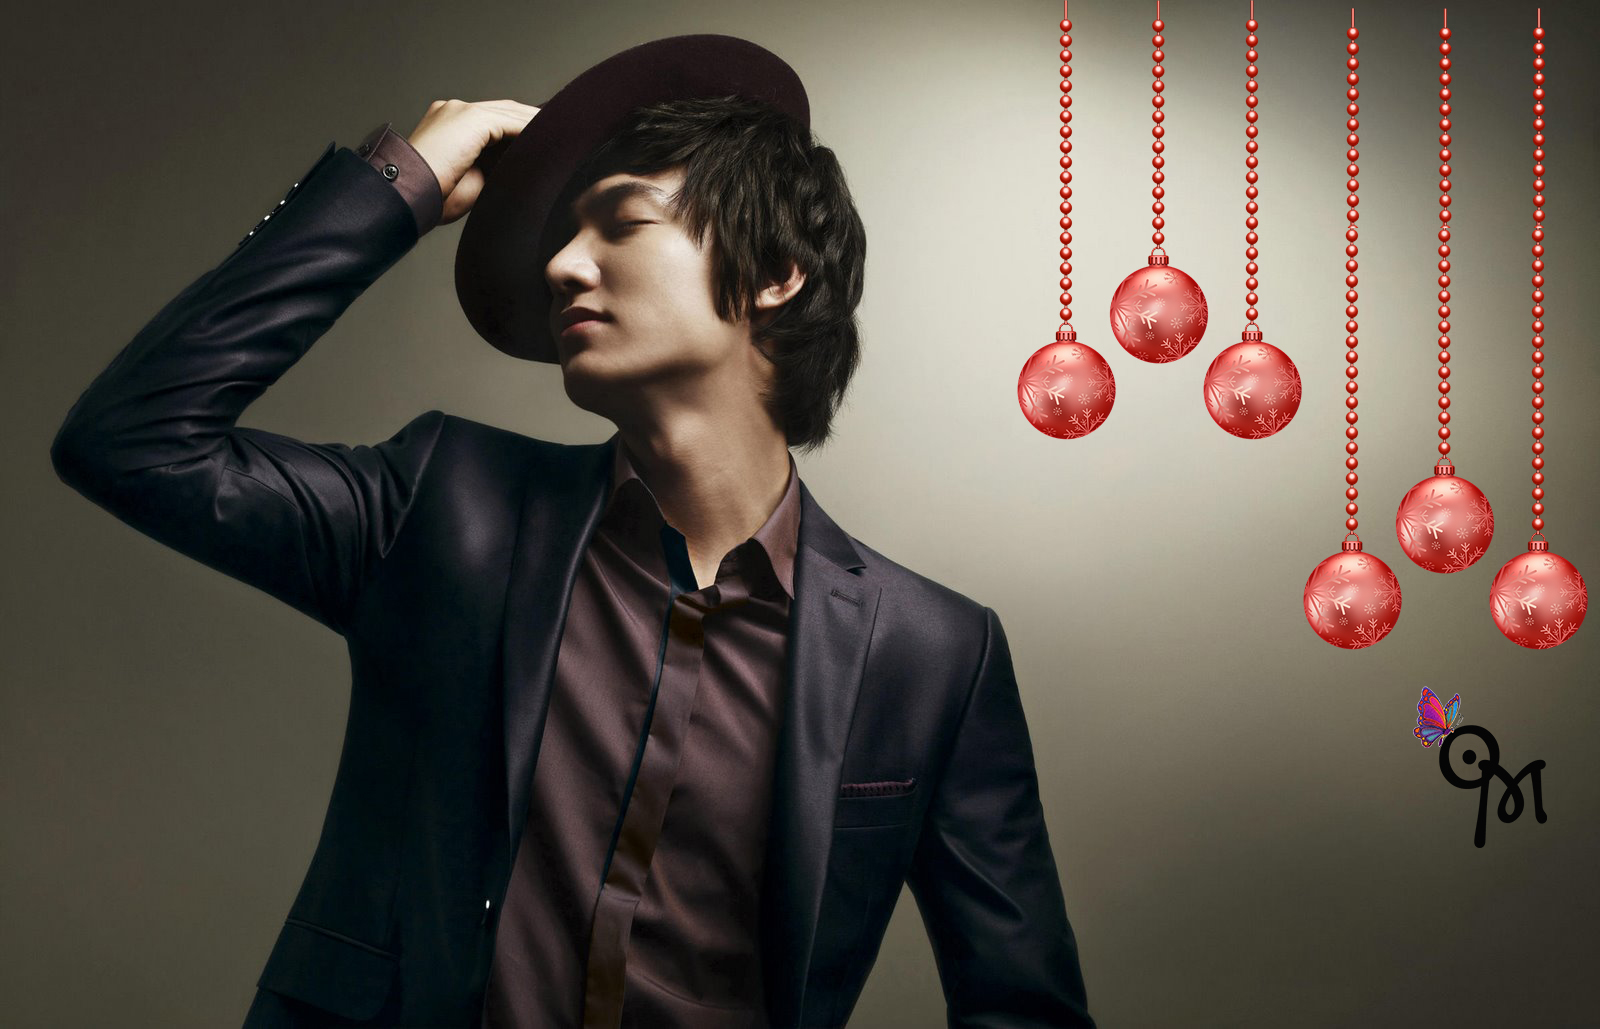 lee-min-ho-wallpaper-natale